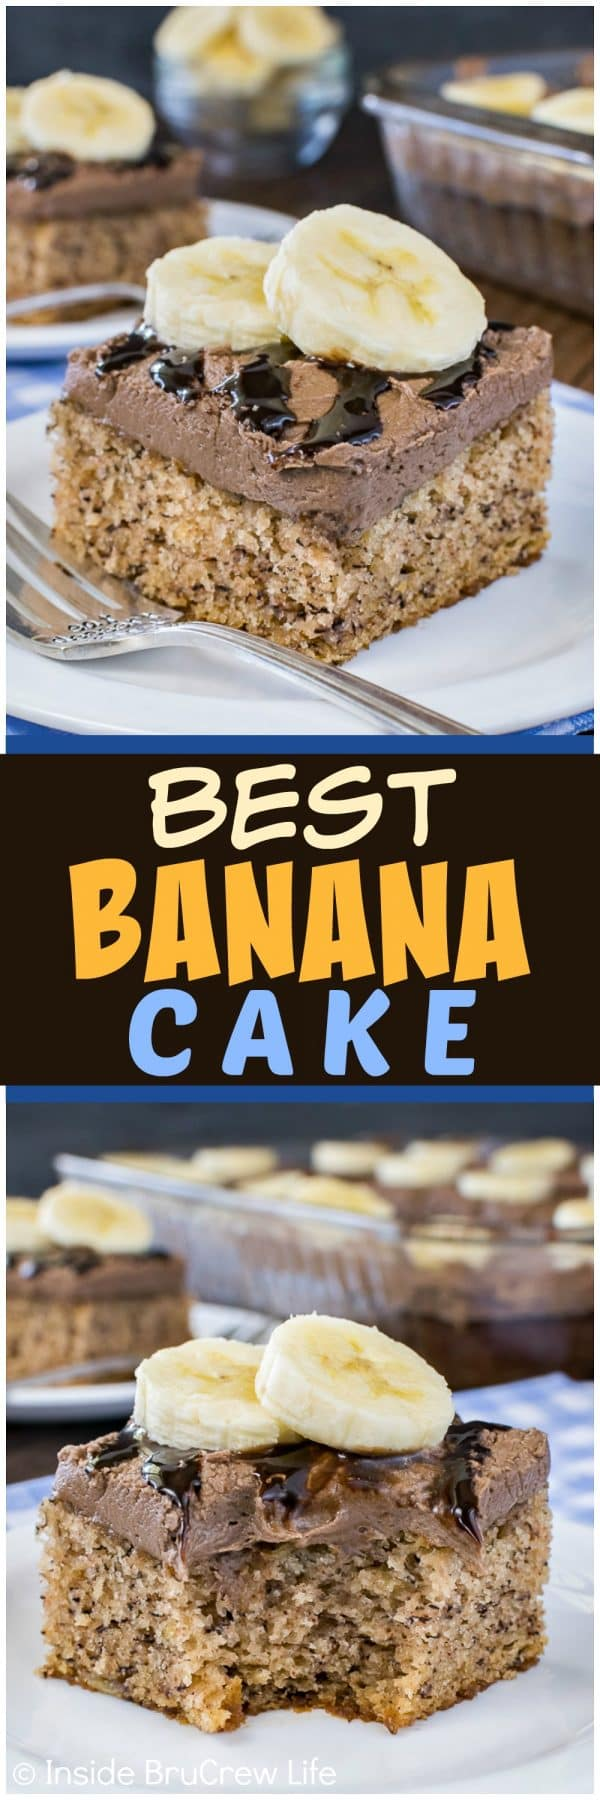 Two pictures of best banana cake collaged together with a dark brown text box